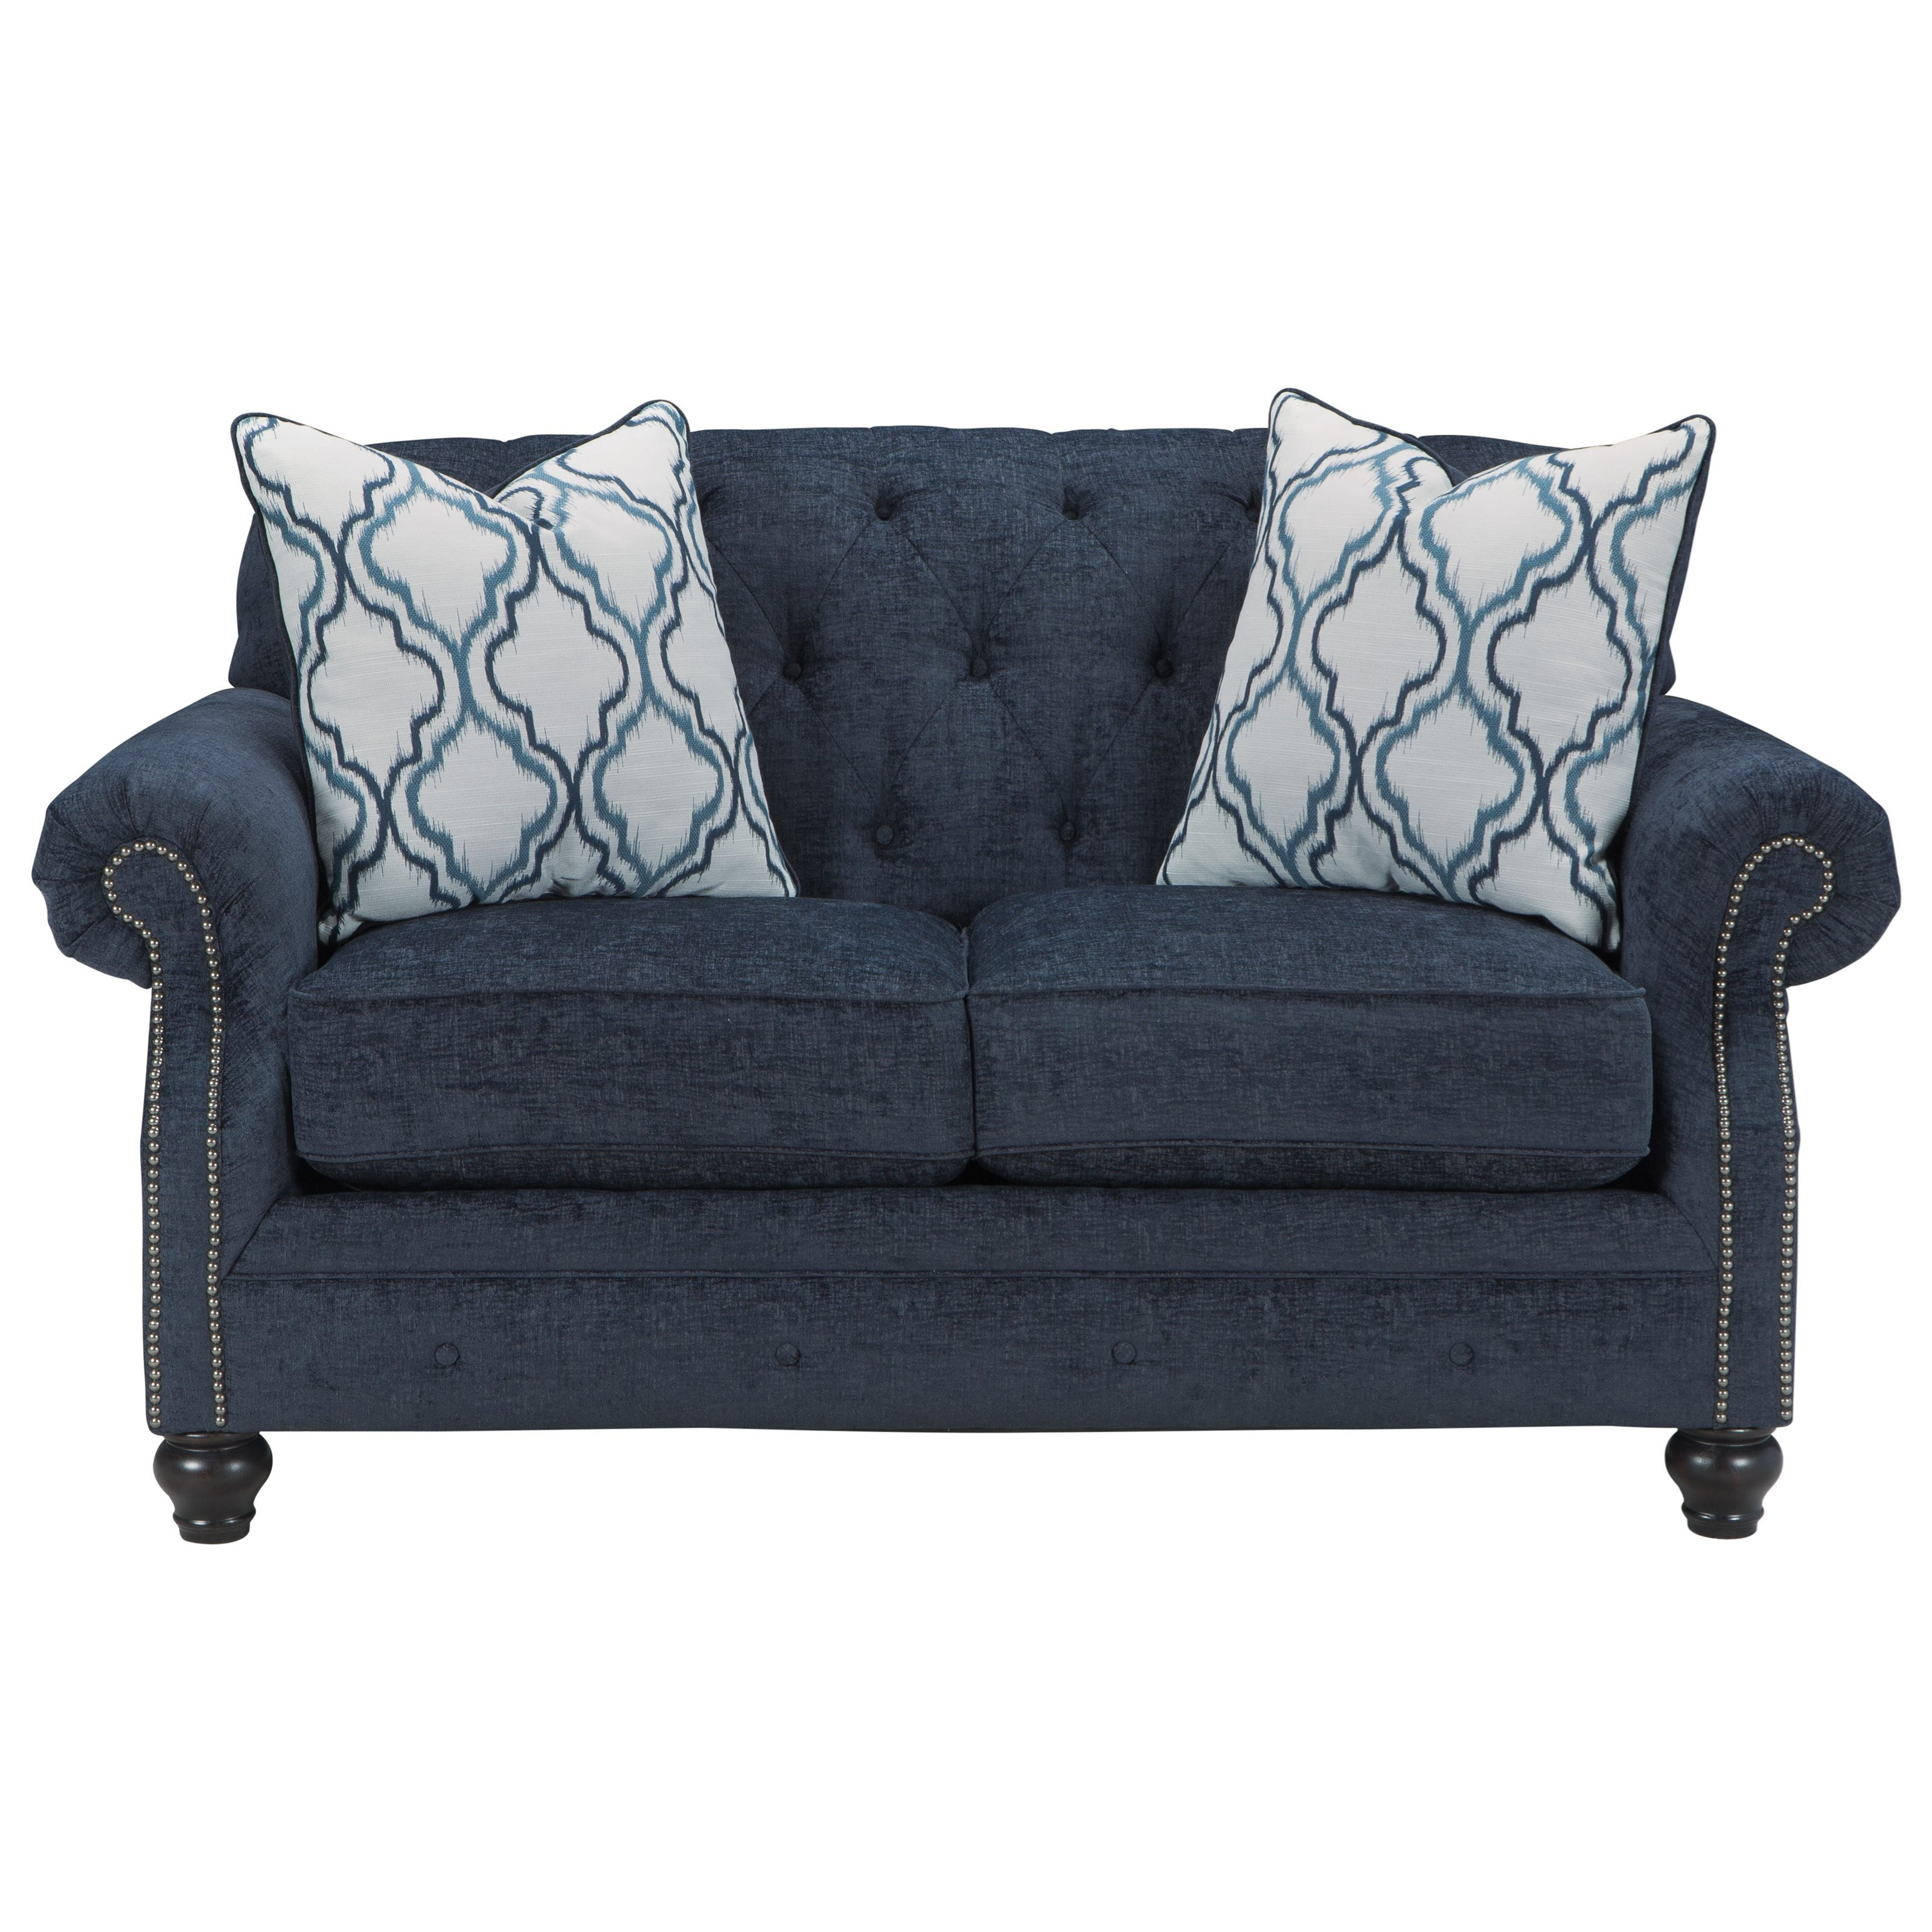 Benchcraft By Ashley Lavernia Transtional Loveseat With Tufted Back Royal Furniture Love Seats